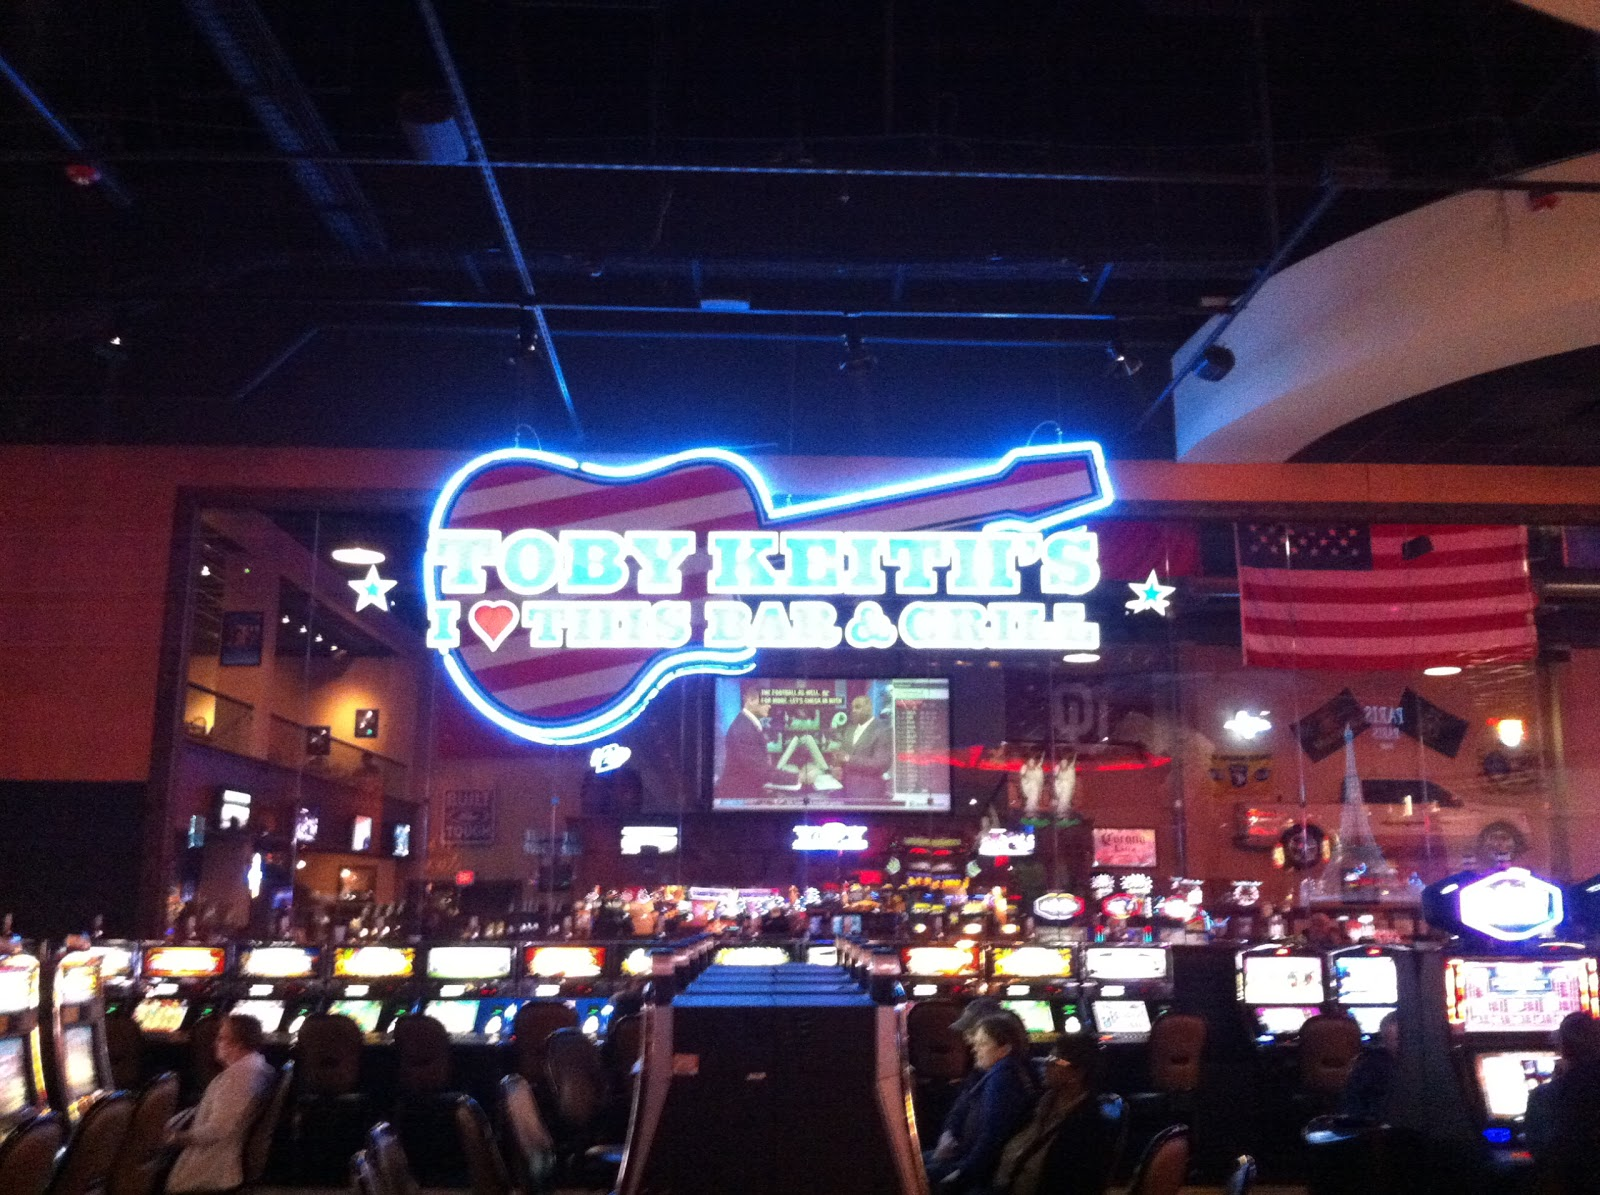 Toby Keith BBQ Barbecue Bar-B-Q Barbeque Ribs Winstar